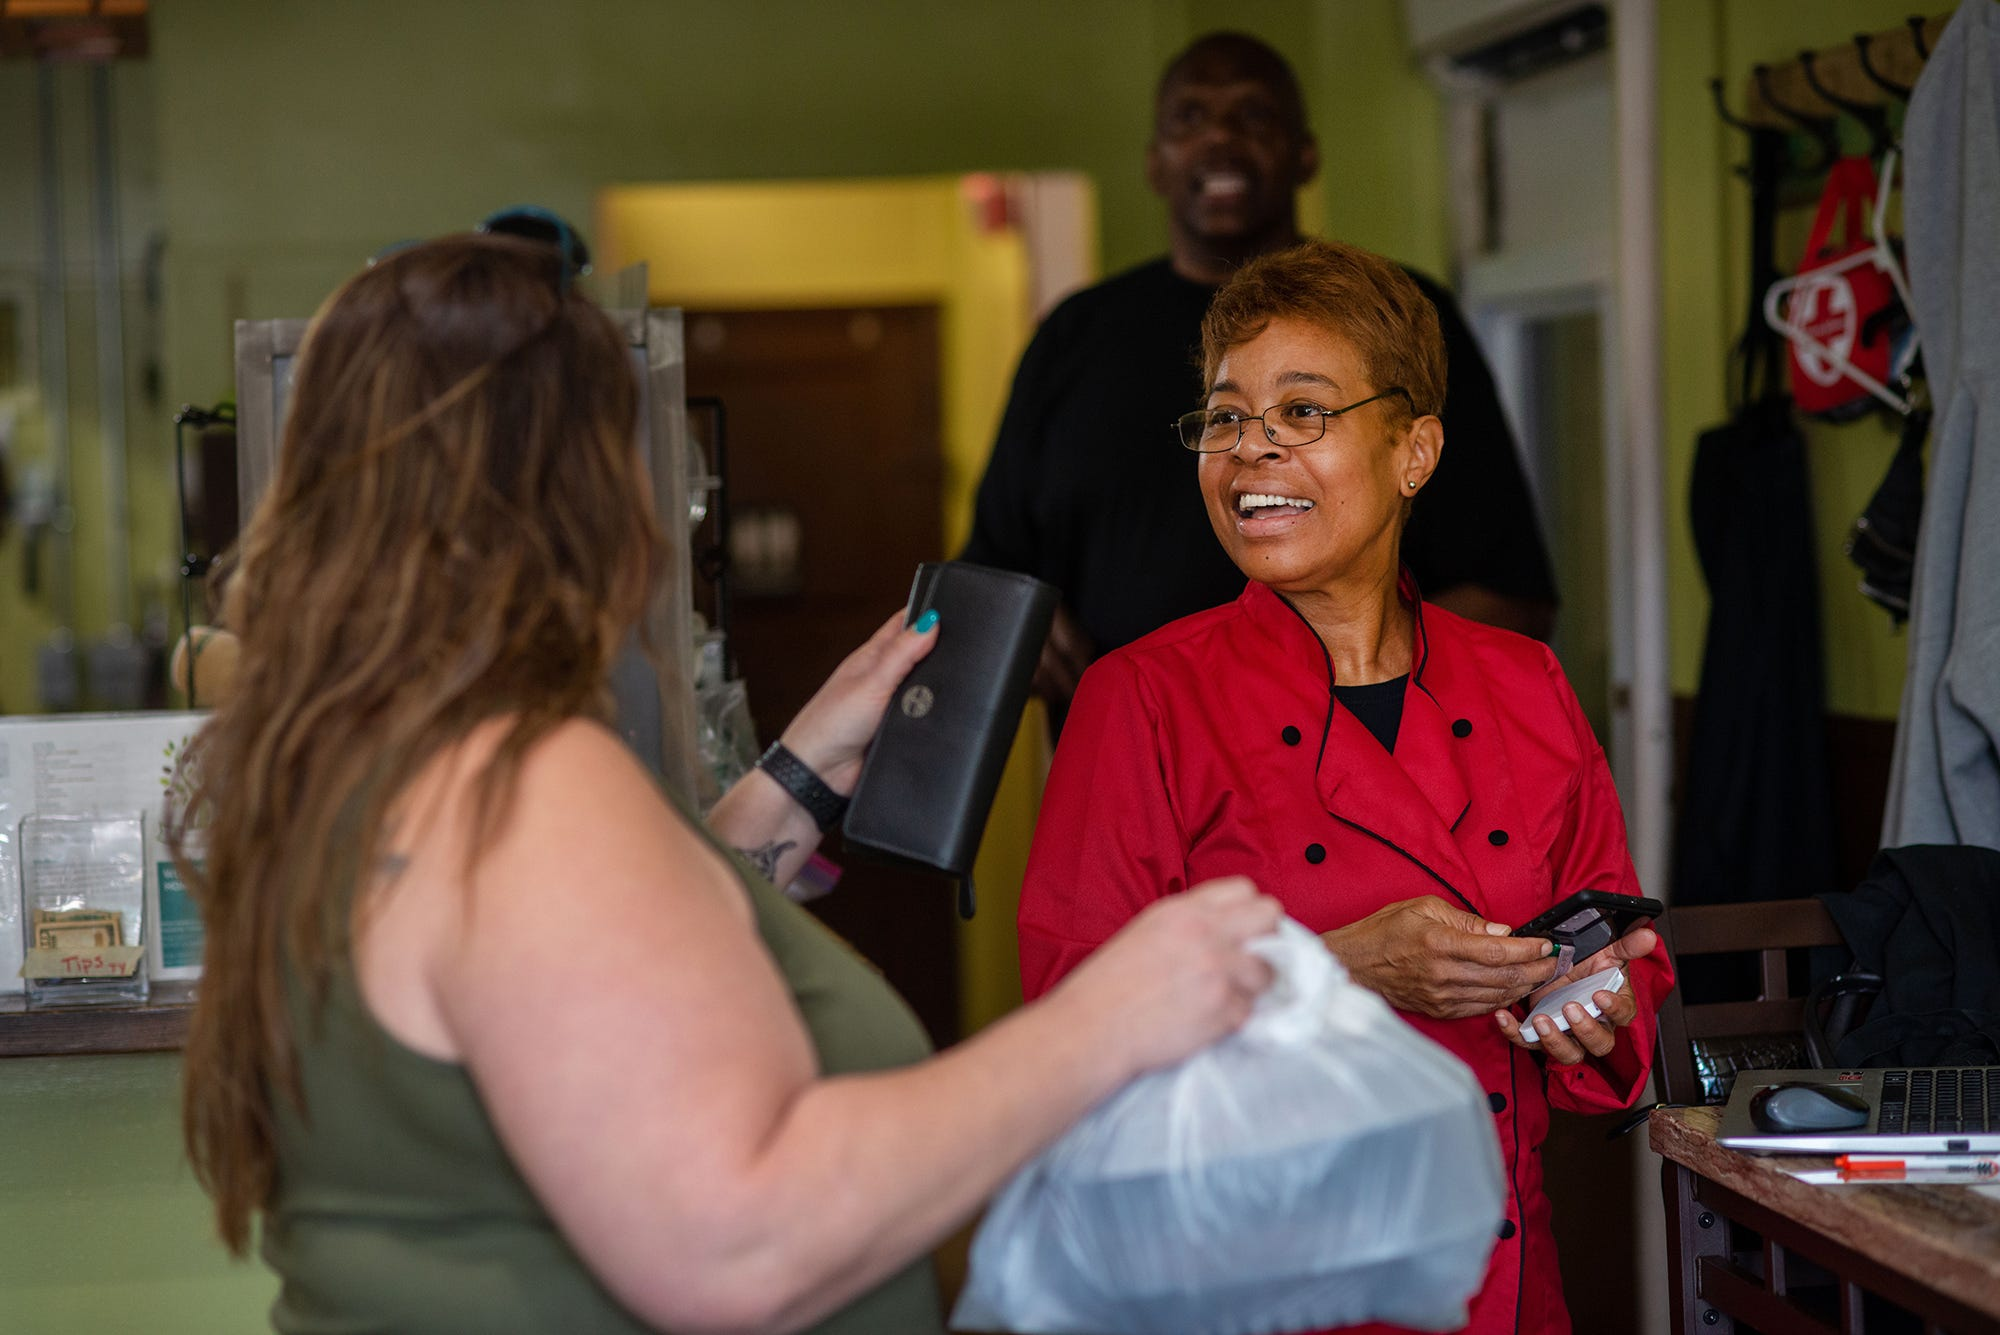 Stephanie Taylor, owner of Welcome Home Cafe smiles as she hands a takeout order to customer Lucy Berson on June 9, 2021, in Jenkintown, Pa.